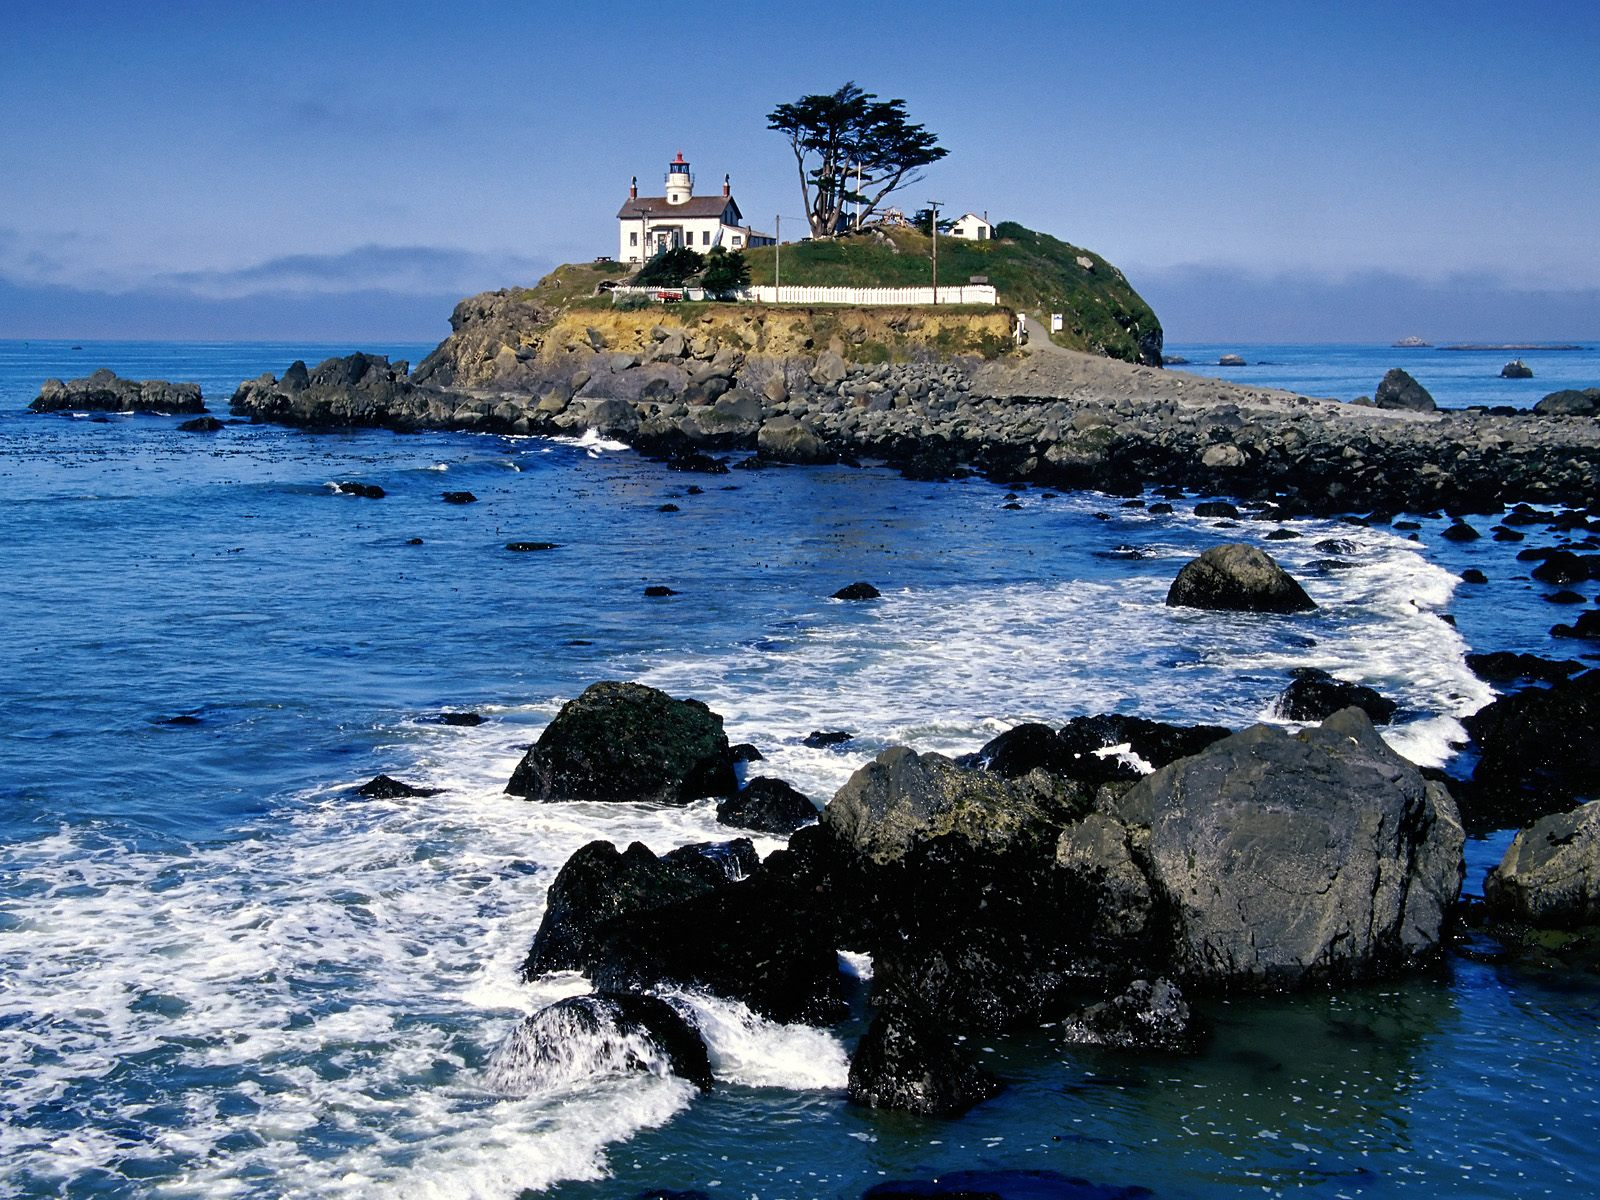 http://2.bp.blogspot.com/-_V6P6X4ZfBg/UMxGJ2AsdaI/AAAAAAAACwU/01p-OsrFKzc/s1600/Battery_Point_Lighthouse_Crescent_City_California.jpg